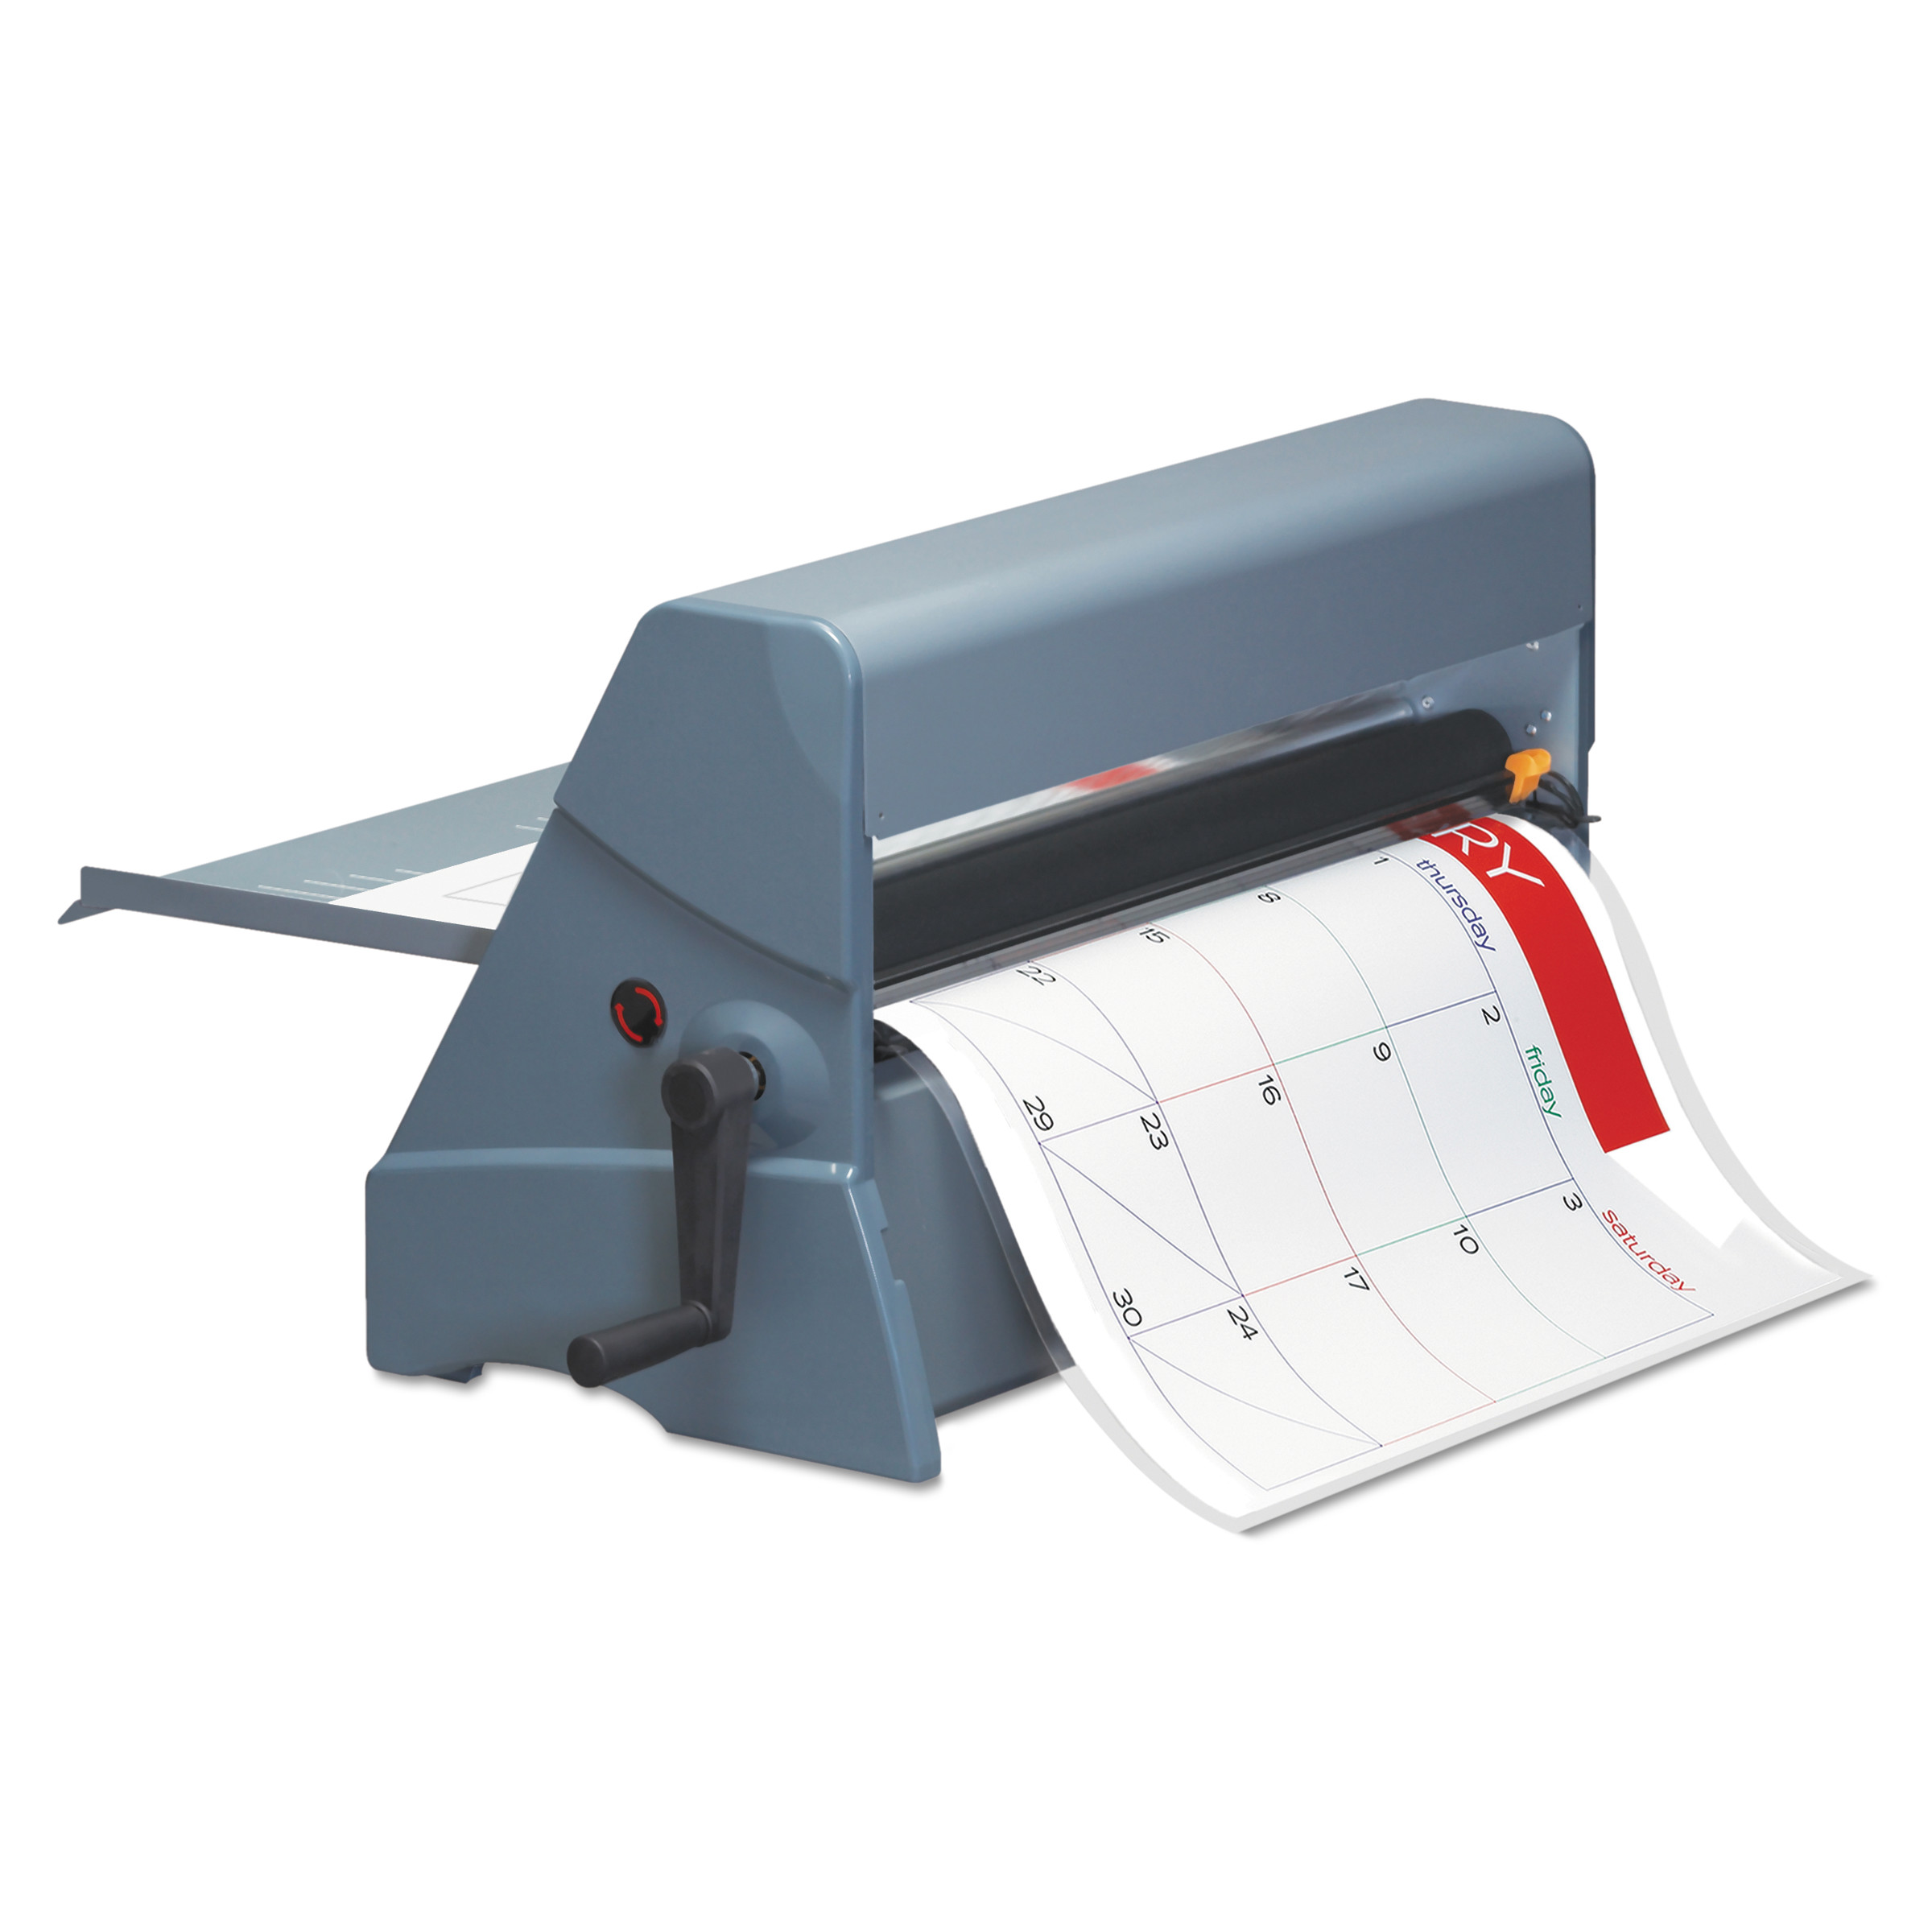 "Scotch Heat-Free Laminator, 25"" Wide, 3/16"" Maximum Document Thickness -MMMLS1050"